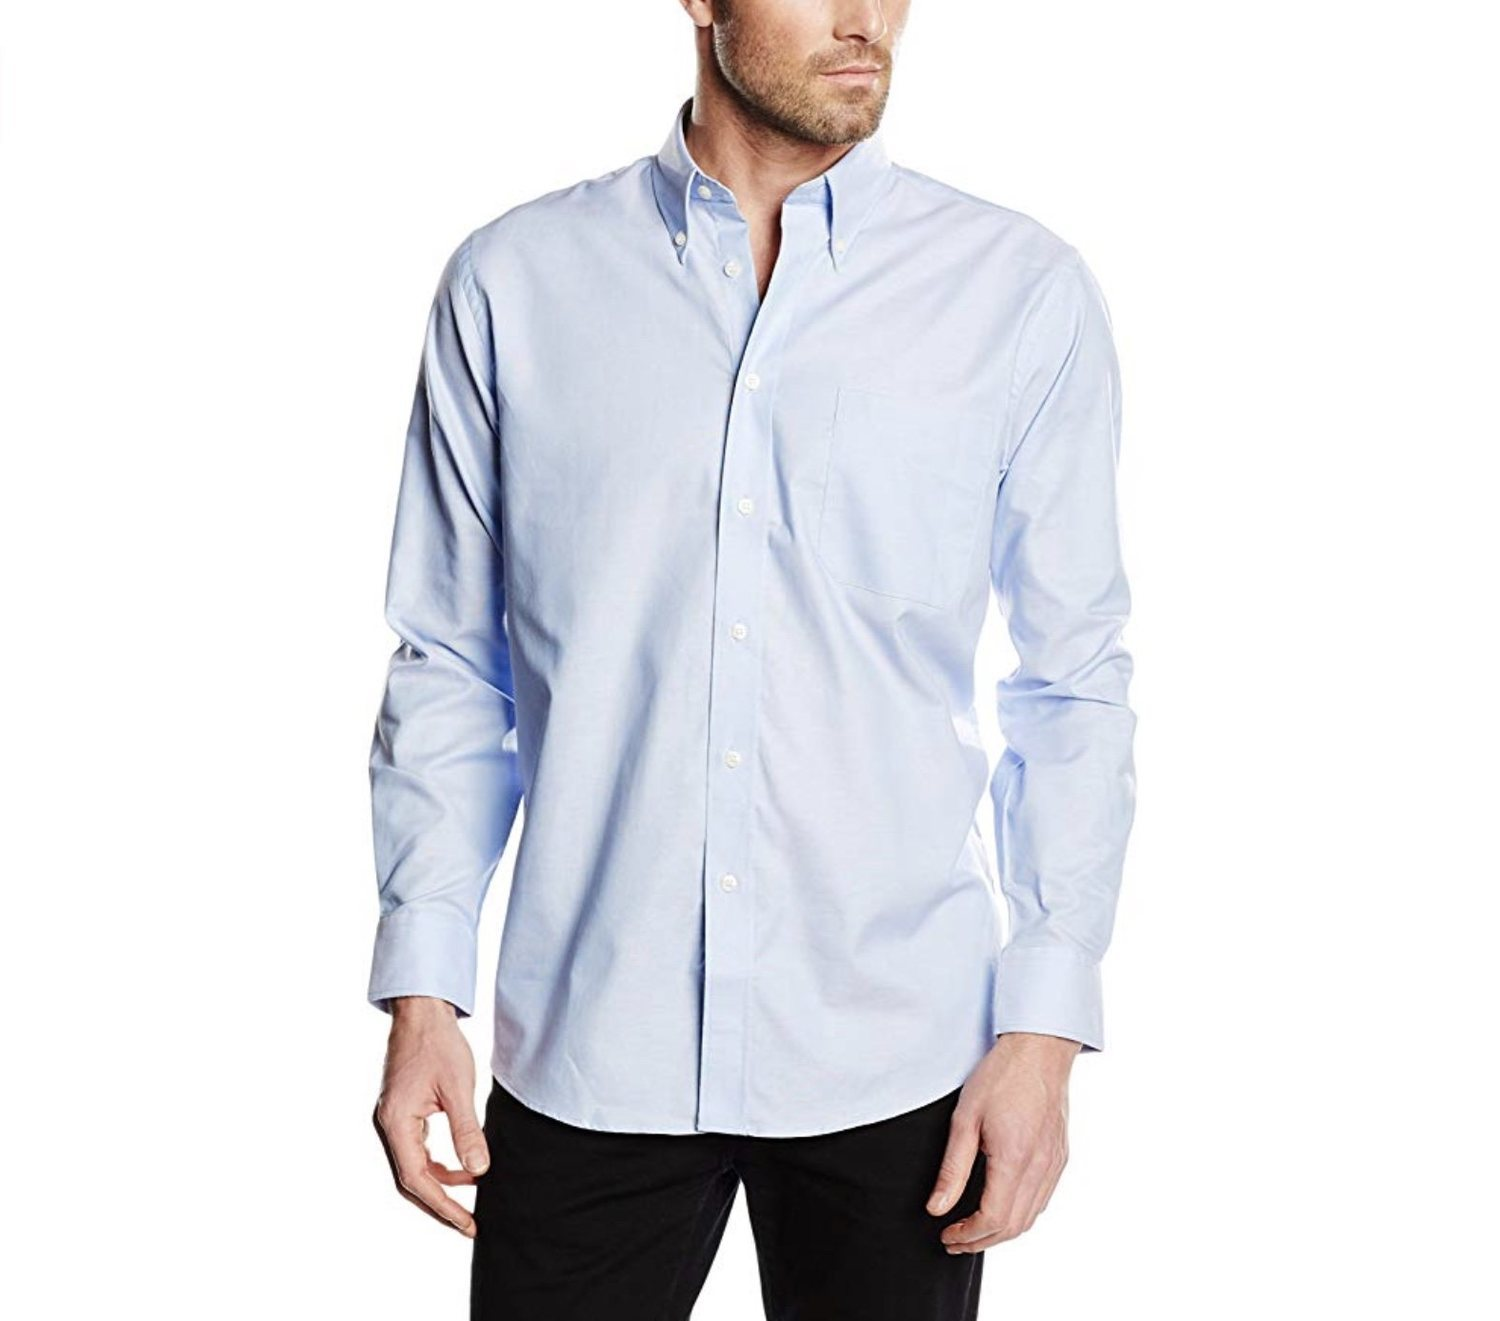 Camisa azul de la marca Fruit of the Loom.